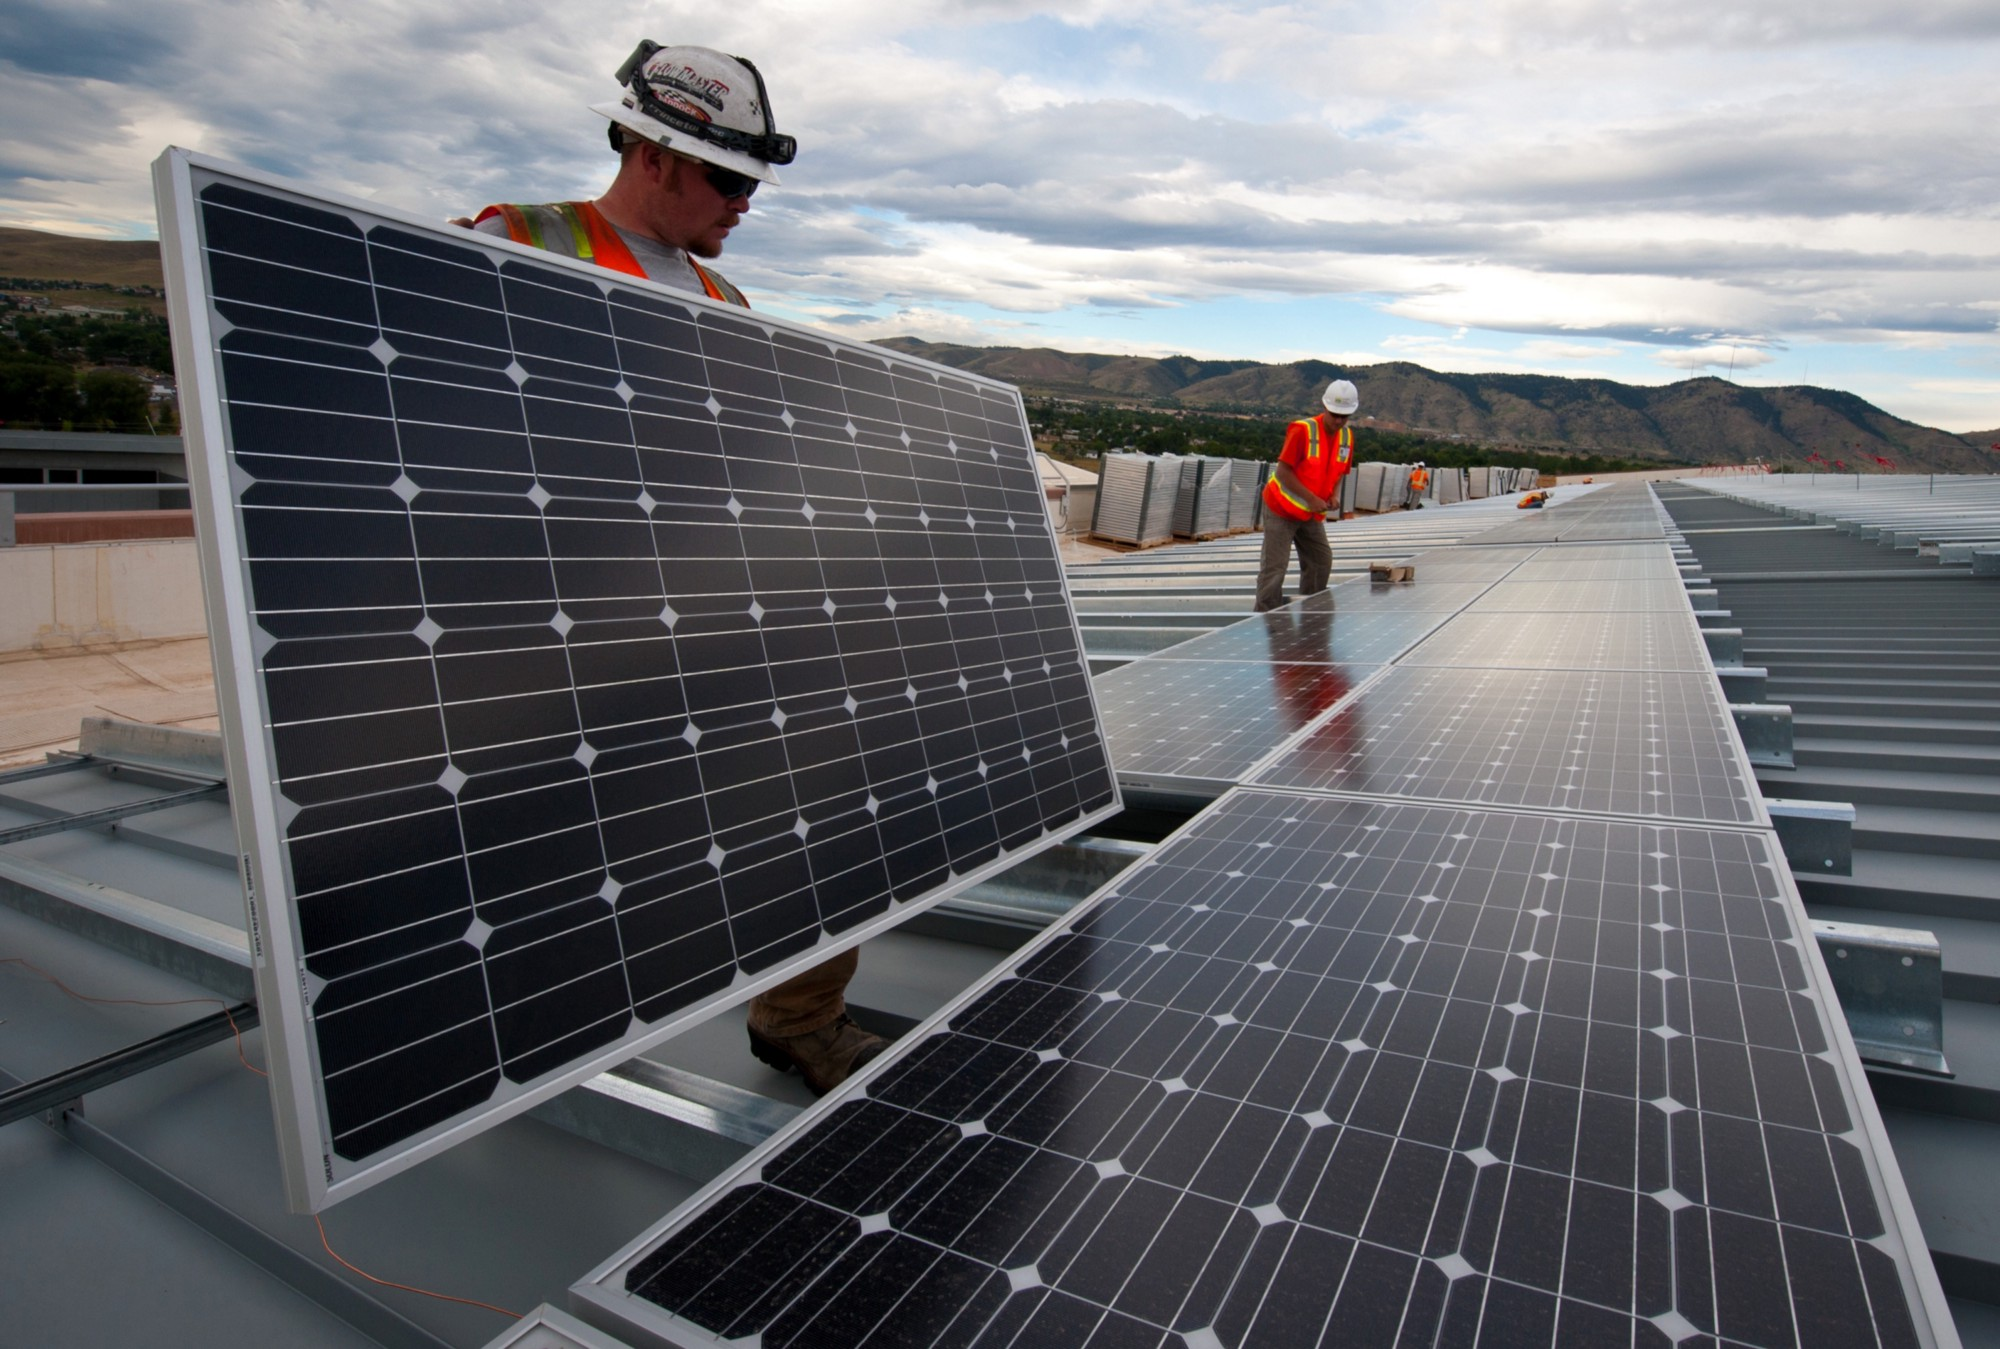 Workers installing solar panels on a rooftop